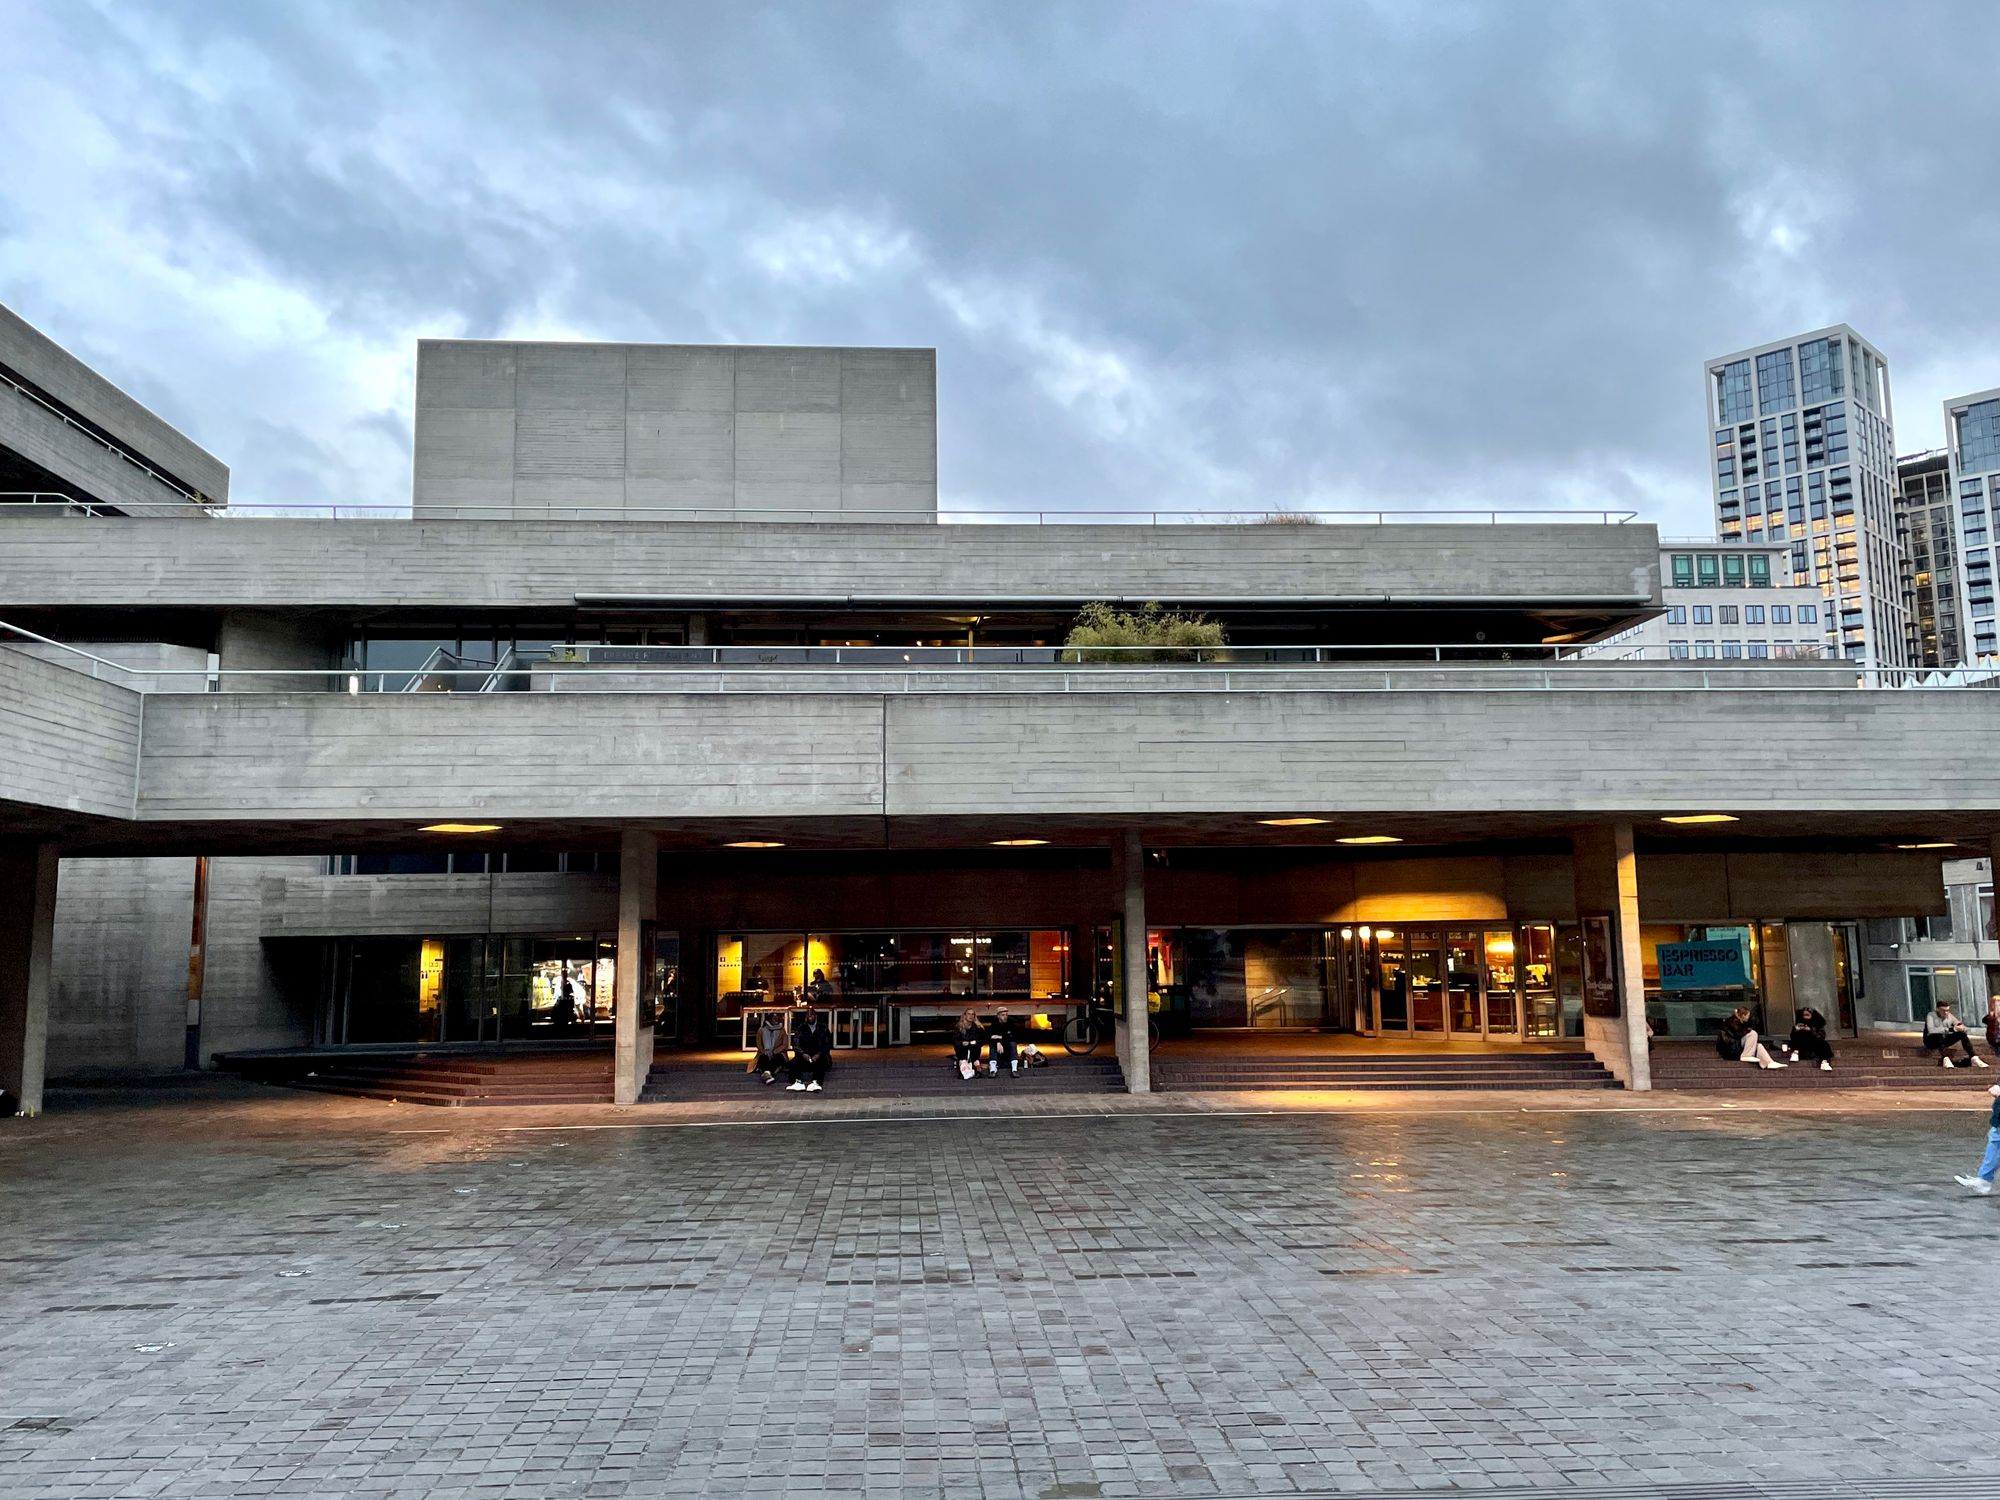 Getting darker at the National Theatre